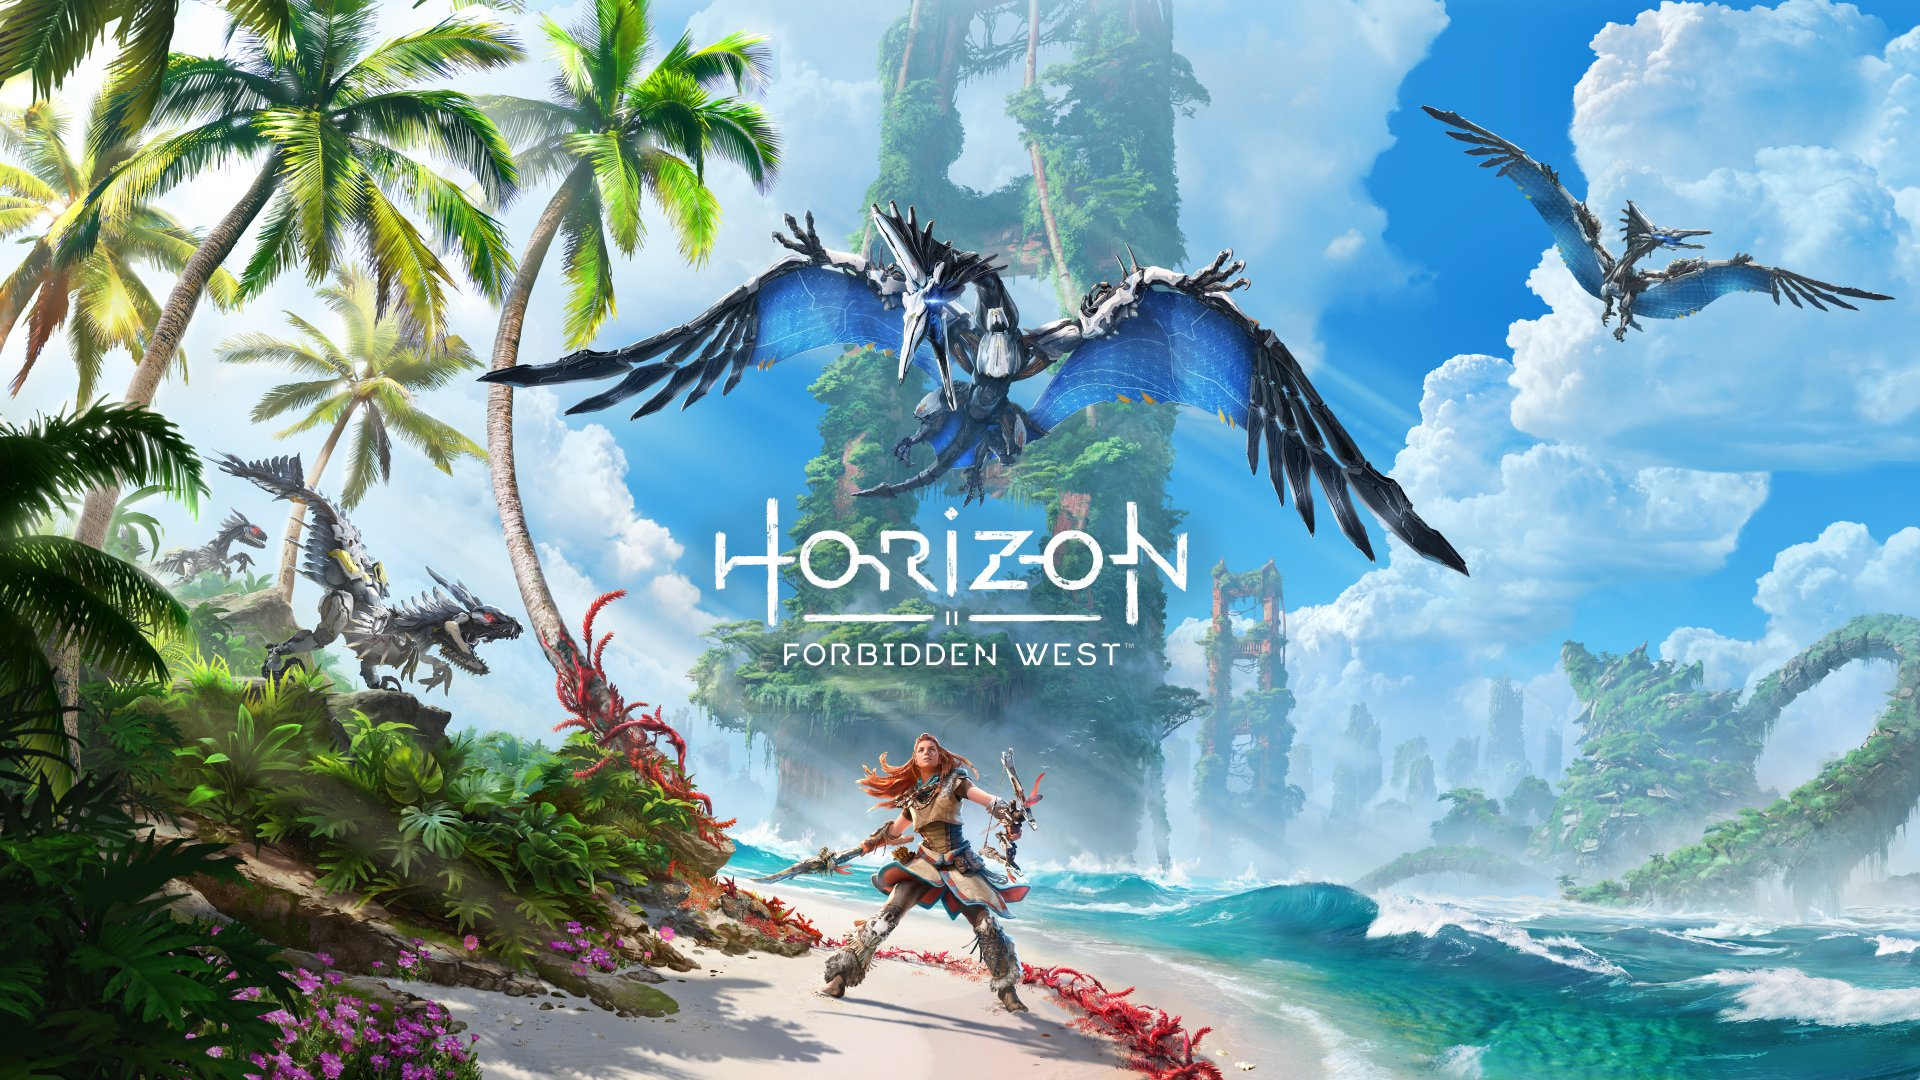 12 Horizon Forbidden West Hd Wallpapers Background Images Wallpaper Abyss